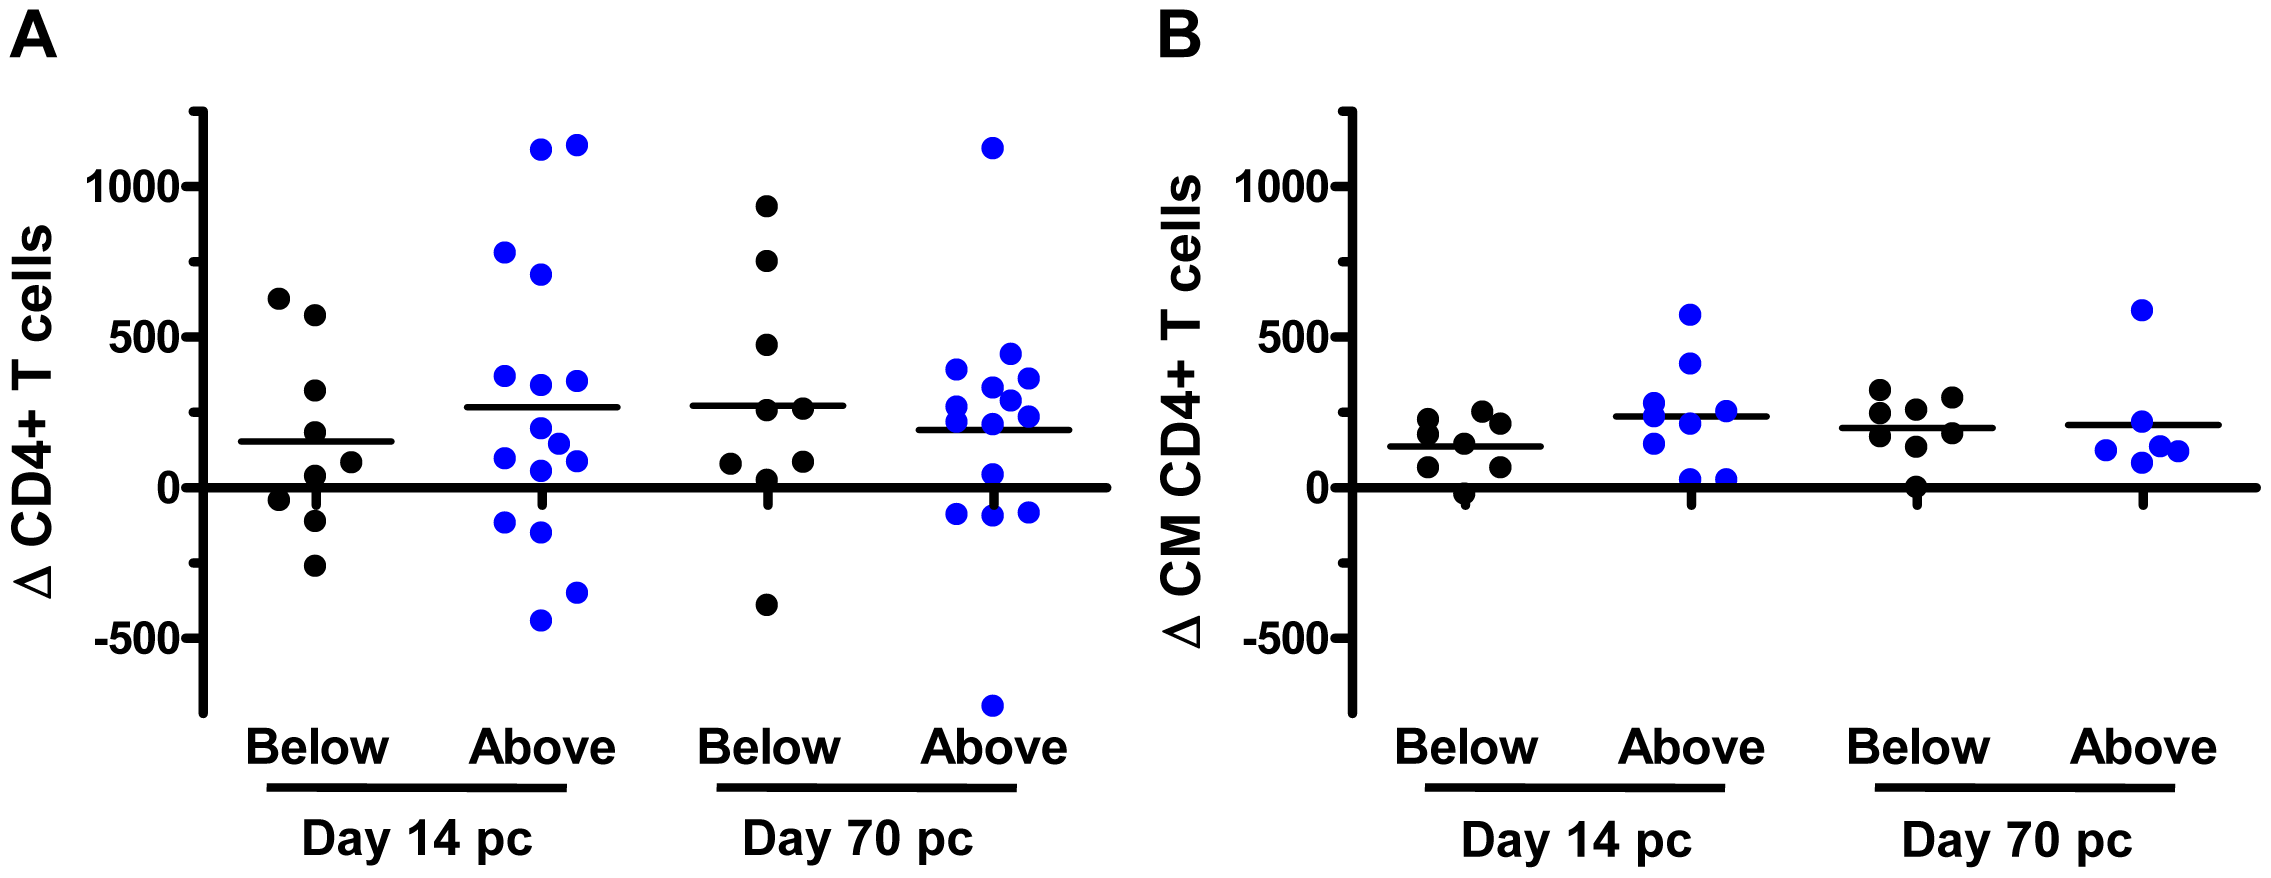 Lack of association between <i>KIR3DH</i> copy numbers and clinical course following SIVmac251 infection in <i>Mamu-A*01</i><sup>–</sup> rhesus monkeys.